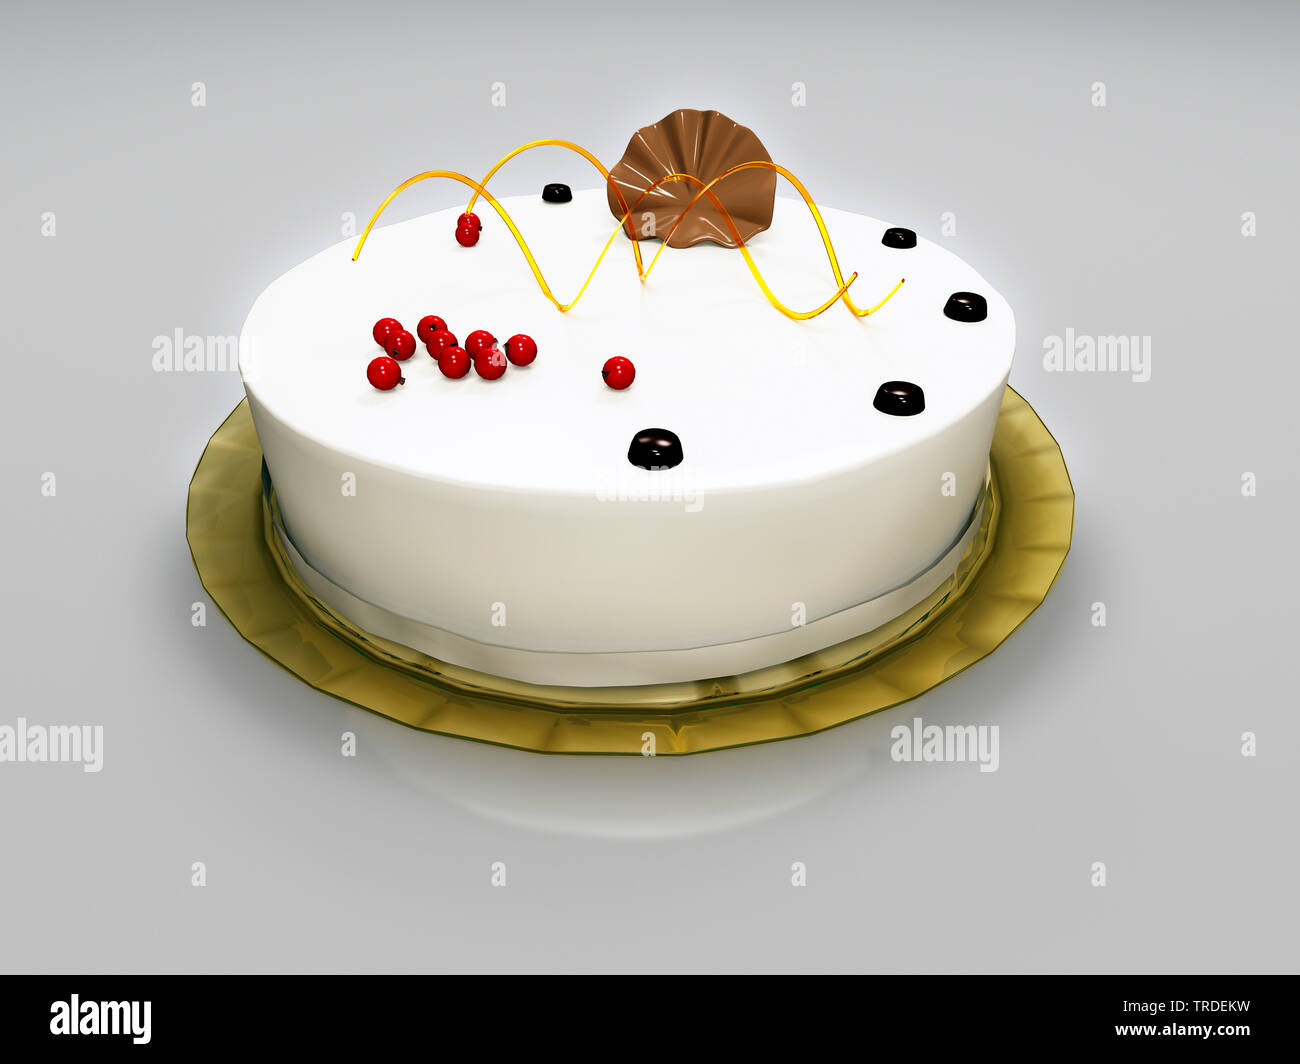 Amazing Delicious Birthday Cake Computer Graphik Stock Photo 255379149 Funny Birthday Cards Online Barepcheapnameinfo